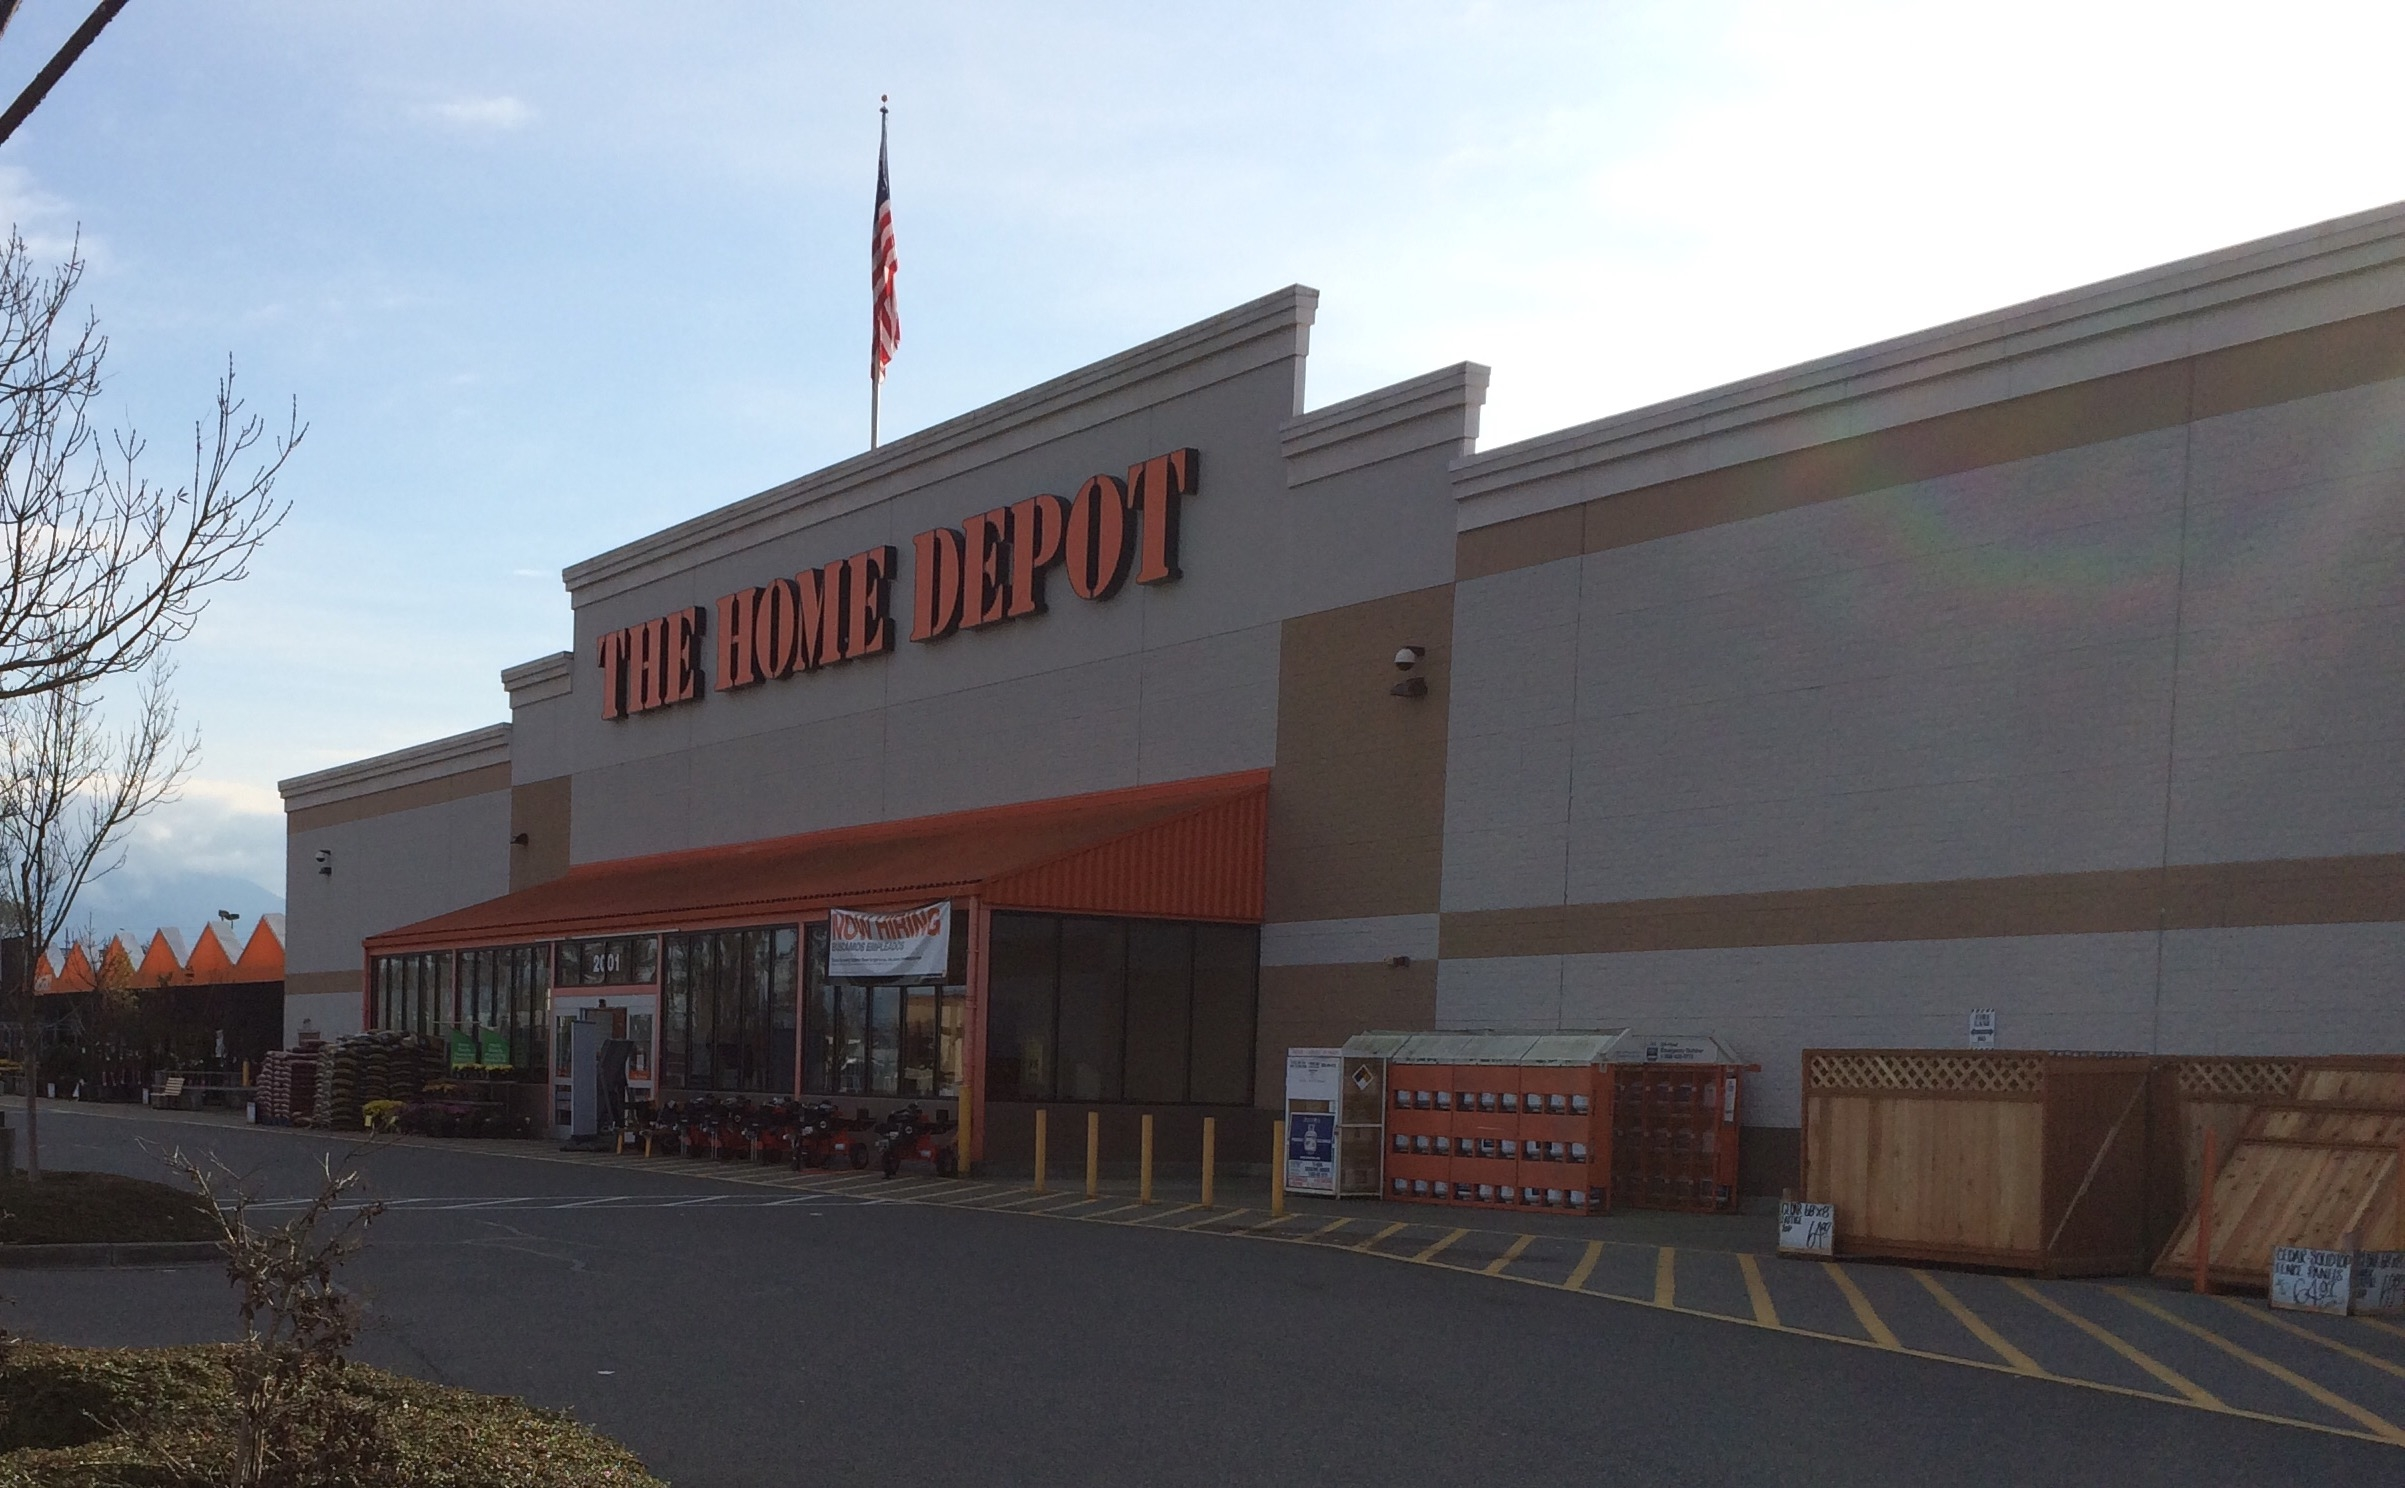 The home depot in burlington wa whitepages for Furniture burlington wa